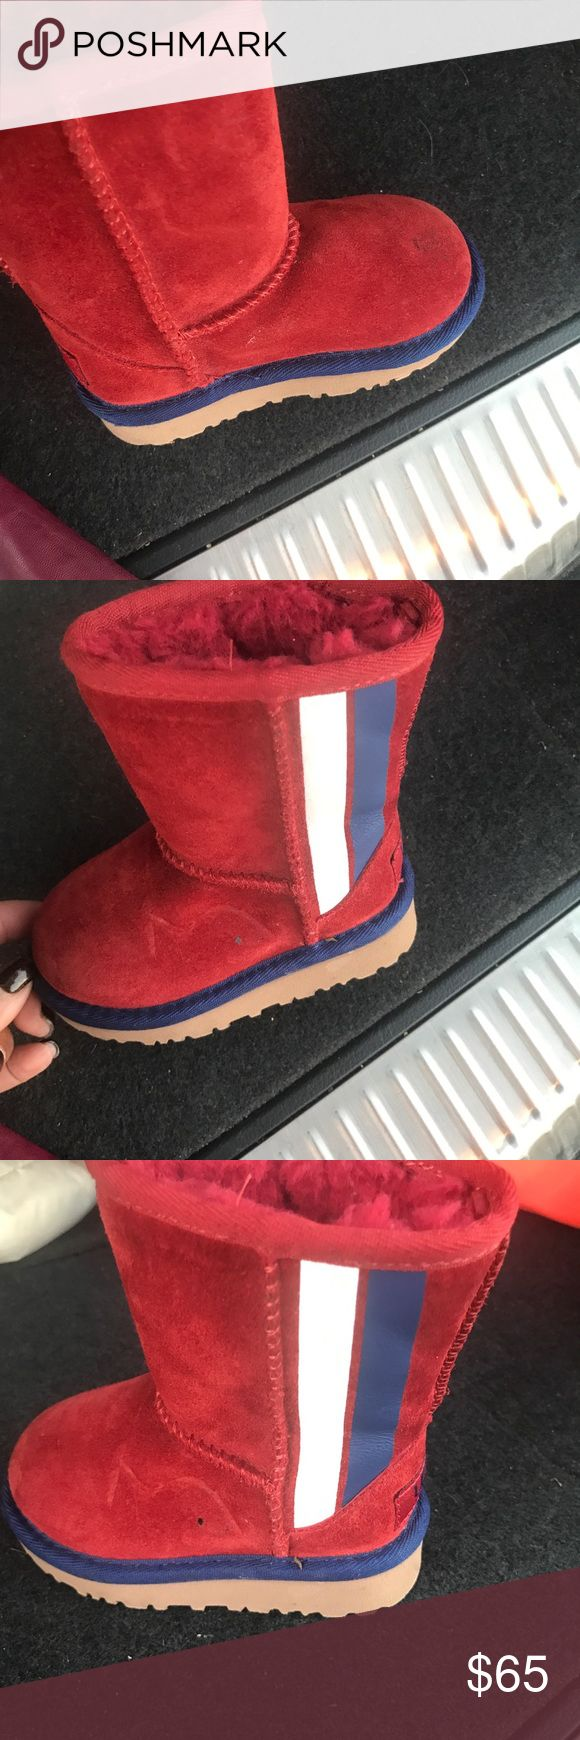 Toddler girls UGGS Adorable  brand new burgundy Uggs with navy and white piping.  Fit is too tight for my baby  and waited too long to return them so my loss is your gain. Just in time for this weather or would make a great Xmas gift for your lil DIVA.   SMOKE FREE/Animal free house UGG Shoes Boots